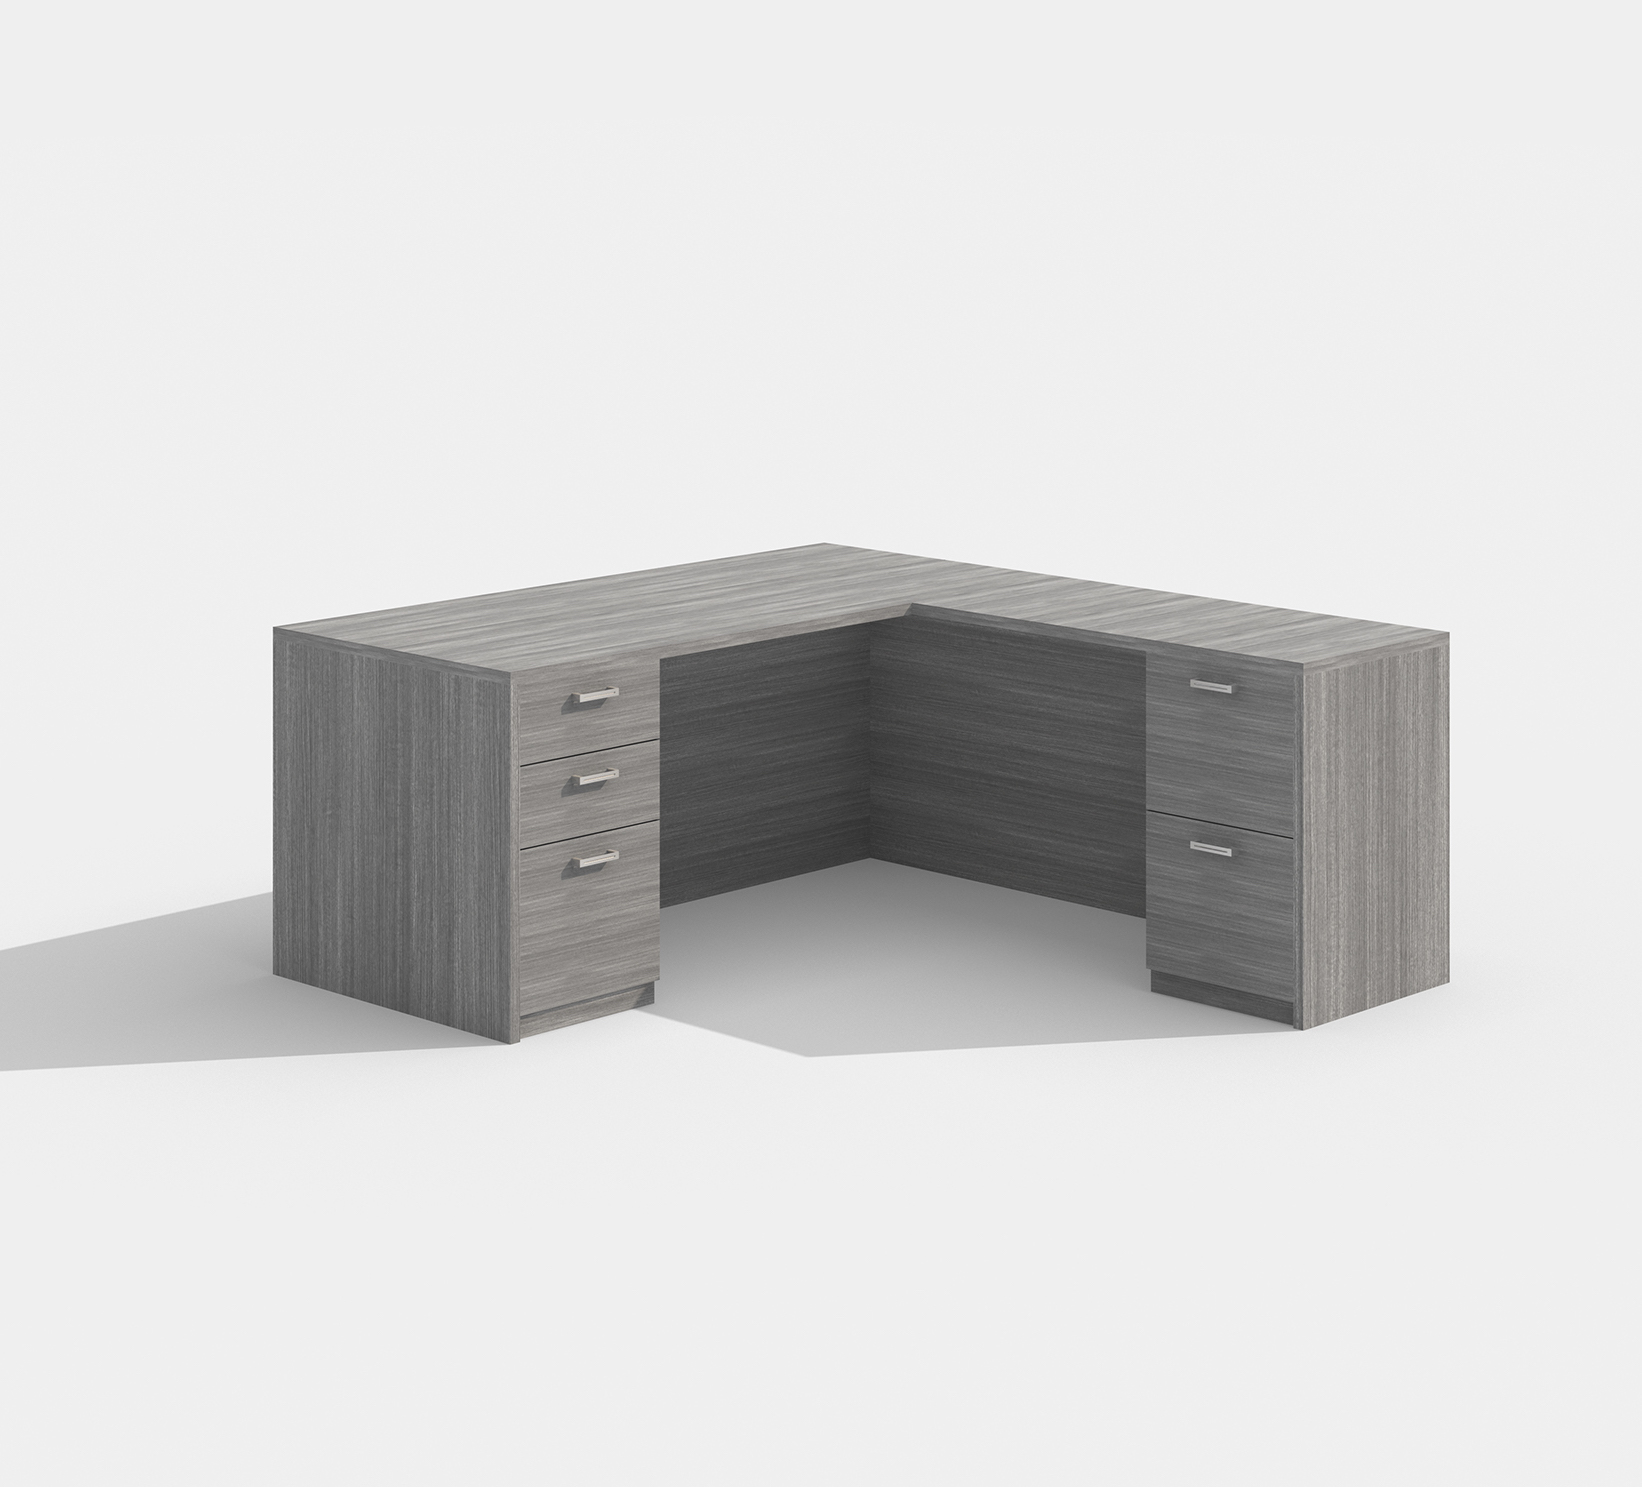 amber l-shaped desk am-313n with valley gray finish